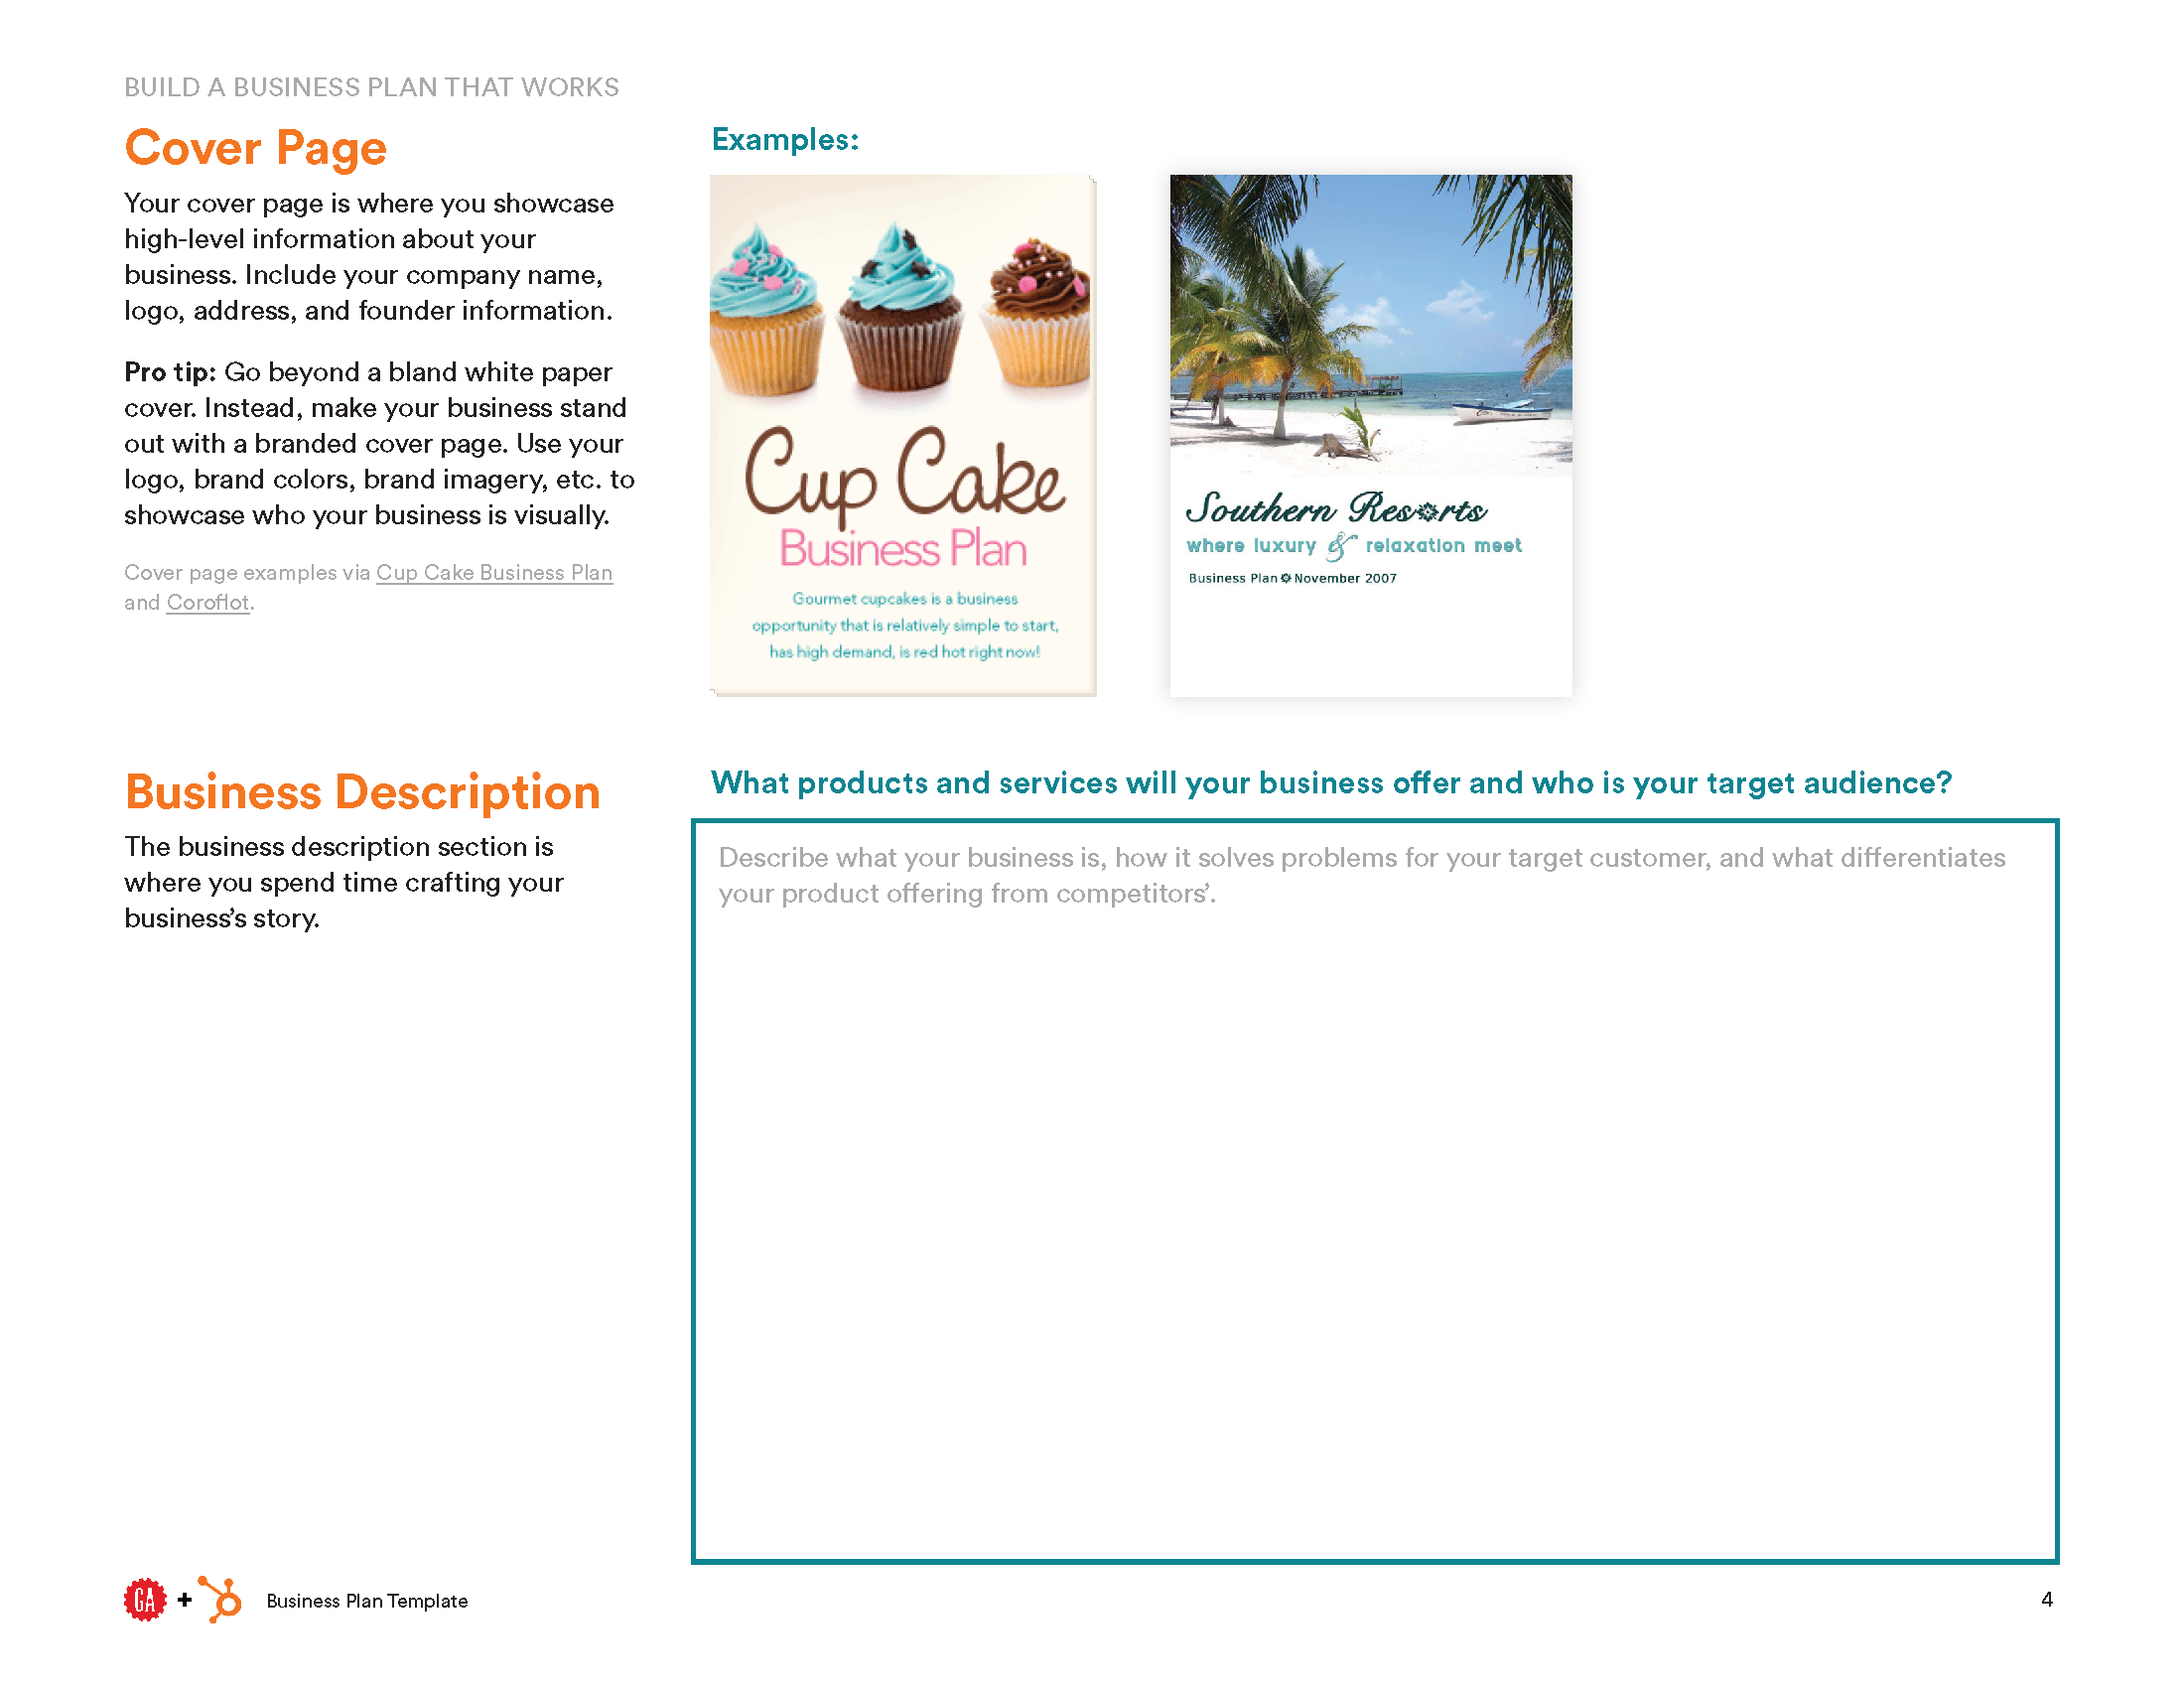 Business Plan Template HubSpot General Assembly - Creating a business plan template